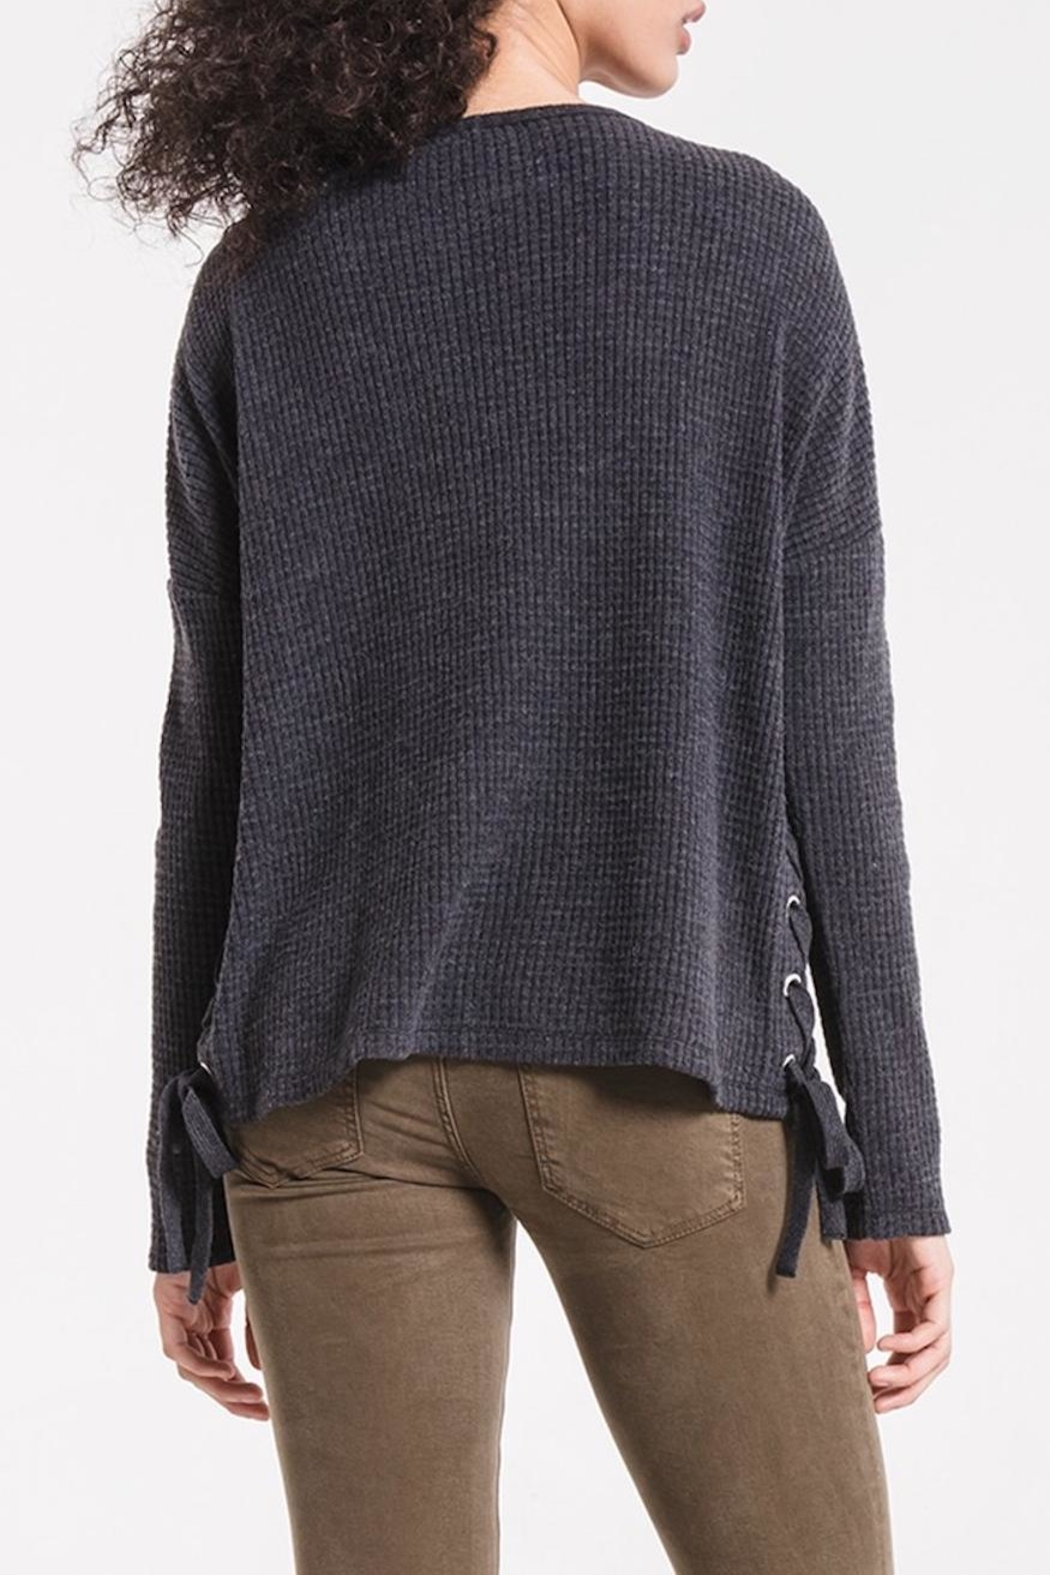 z supply Lace Up Thermal - Back Cropped Image